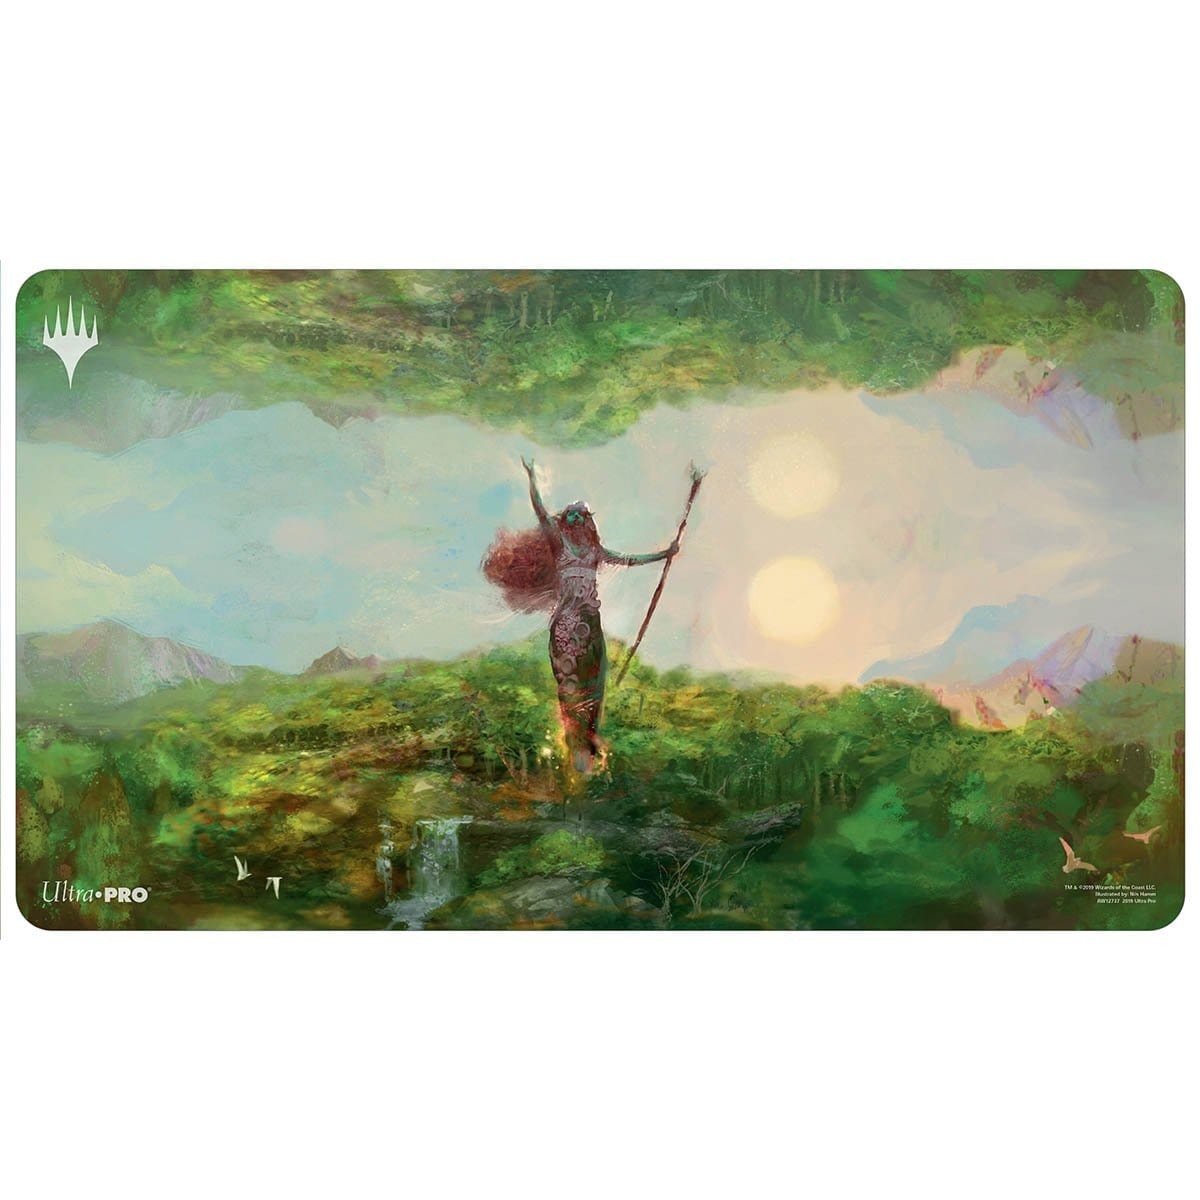 Fastbond Playmat - Playmat - Original Magic Art - Accessories for Magic the Gathering and other card games